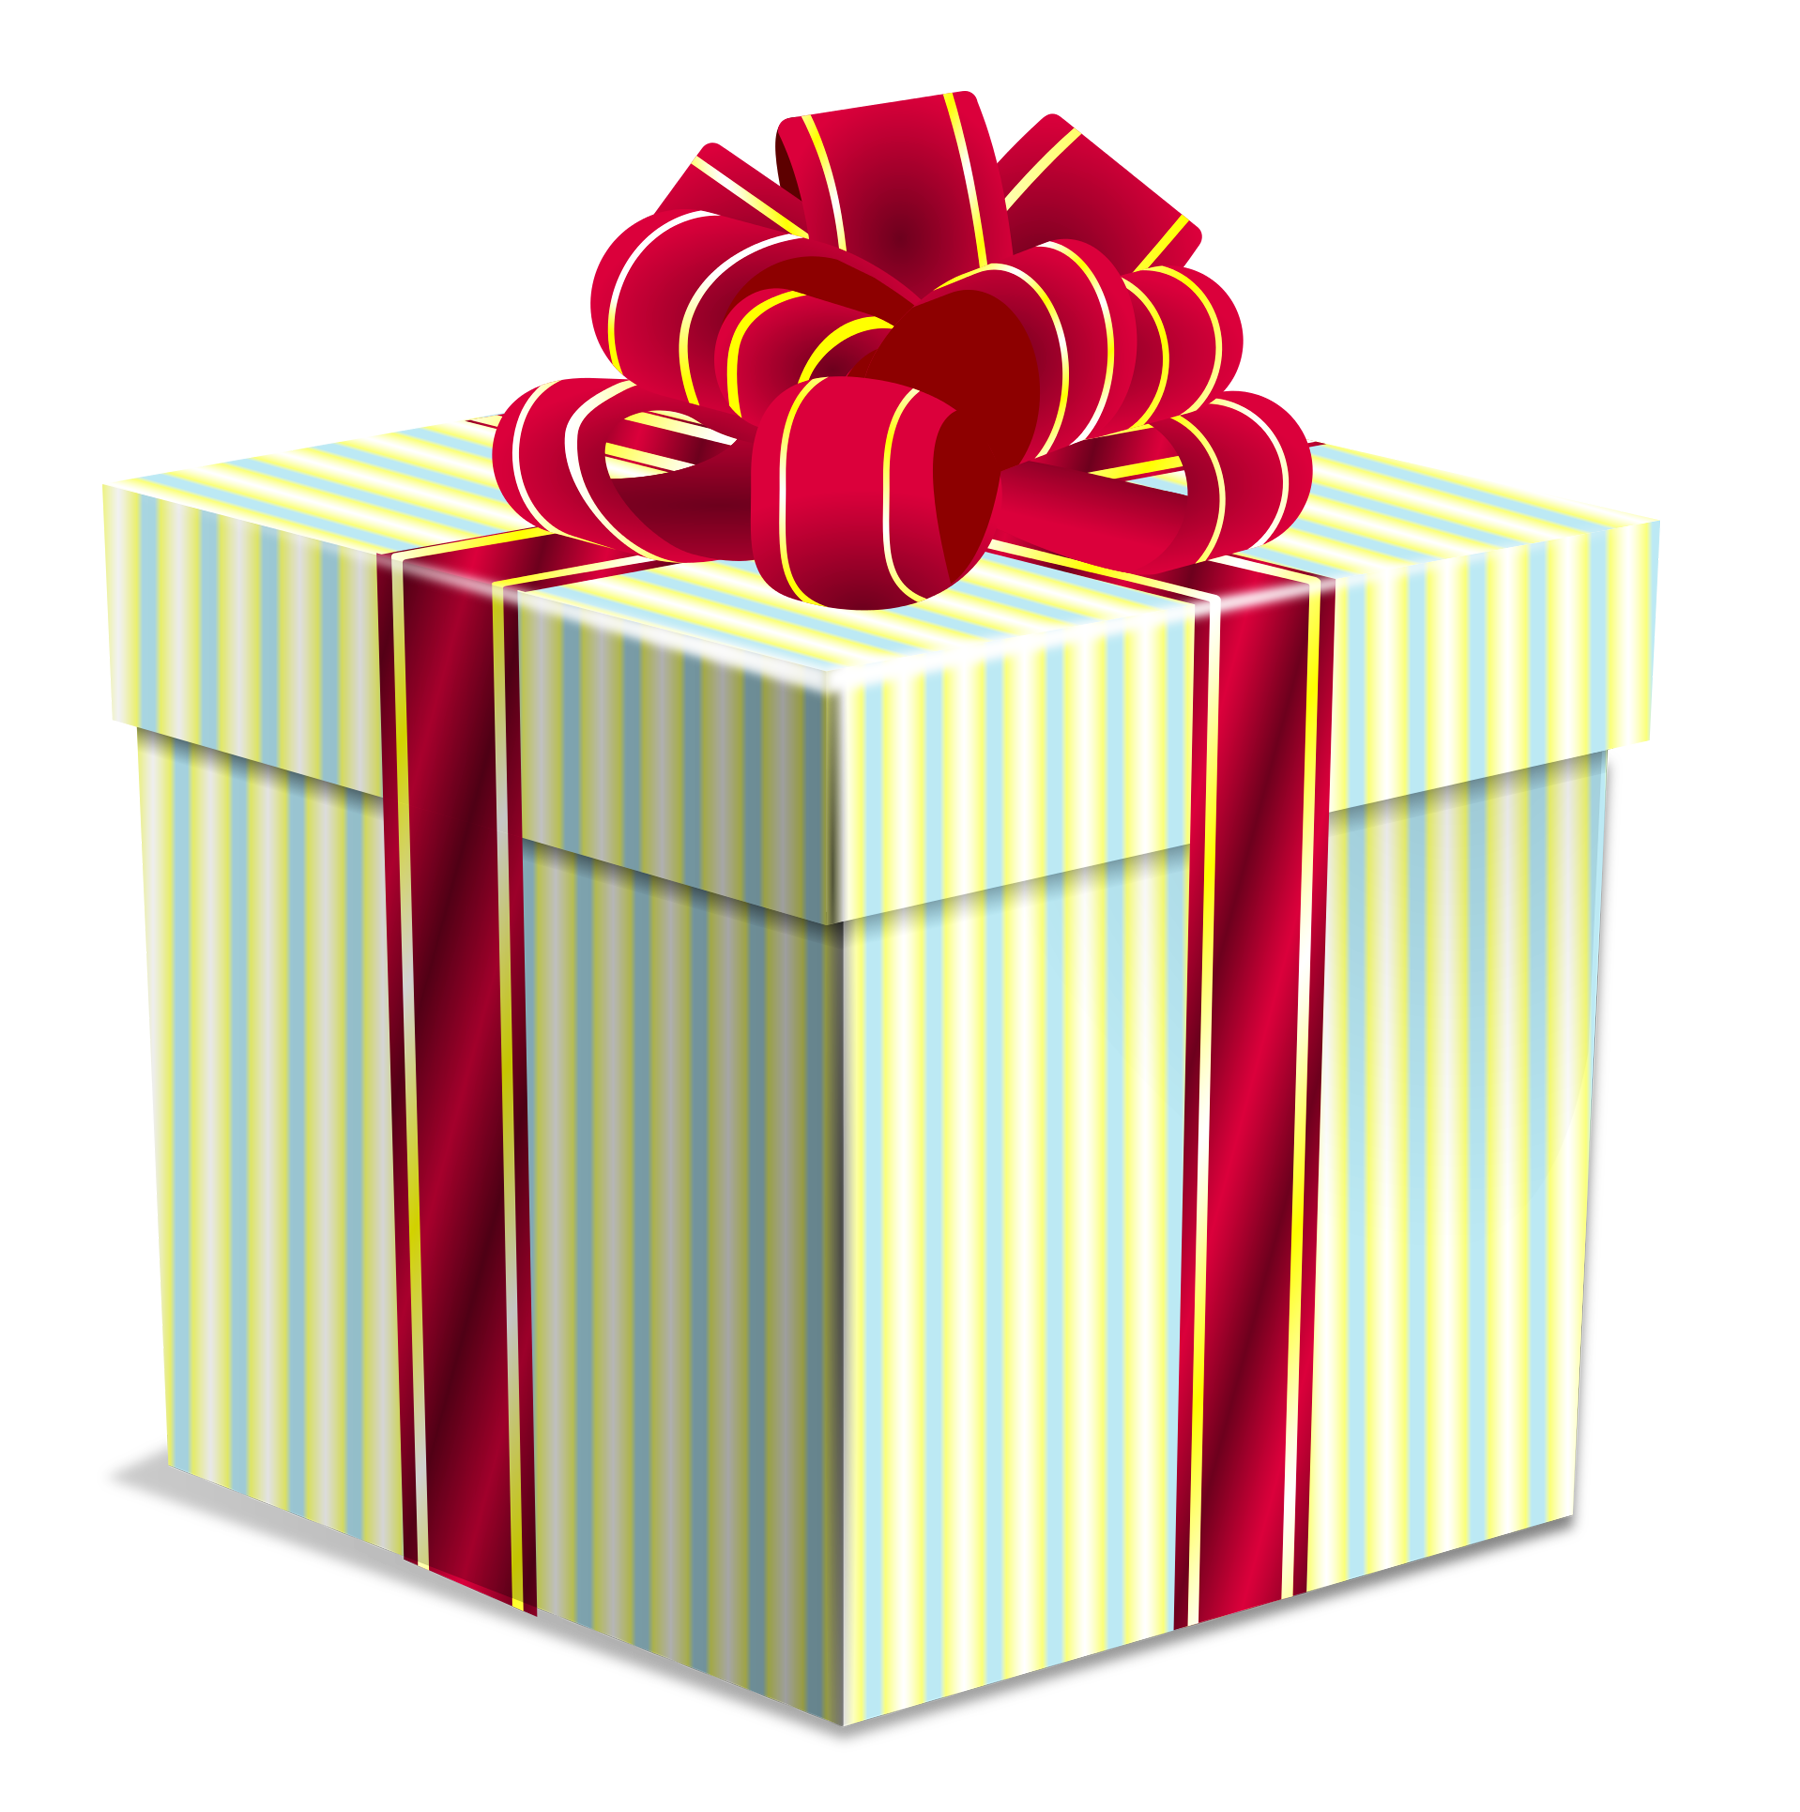 gift box png transparent image pngpix #11346